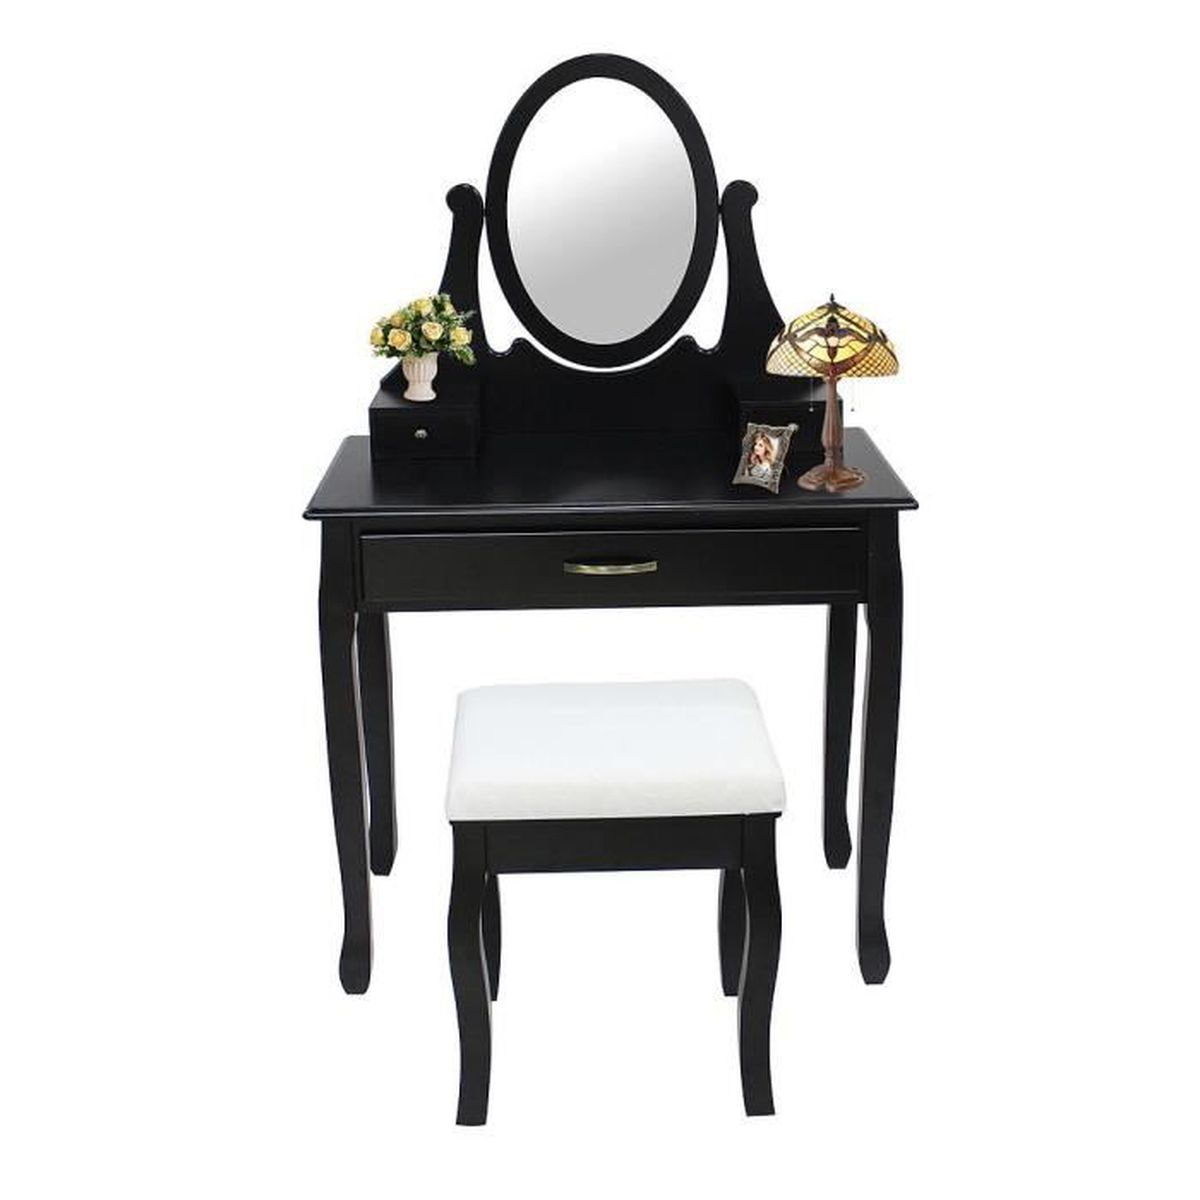 table de maquillage avec miroir et tabouret coiffeuse couleur noire achat vente. Black Bedroom Furniture Sets. Home Design Ideas